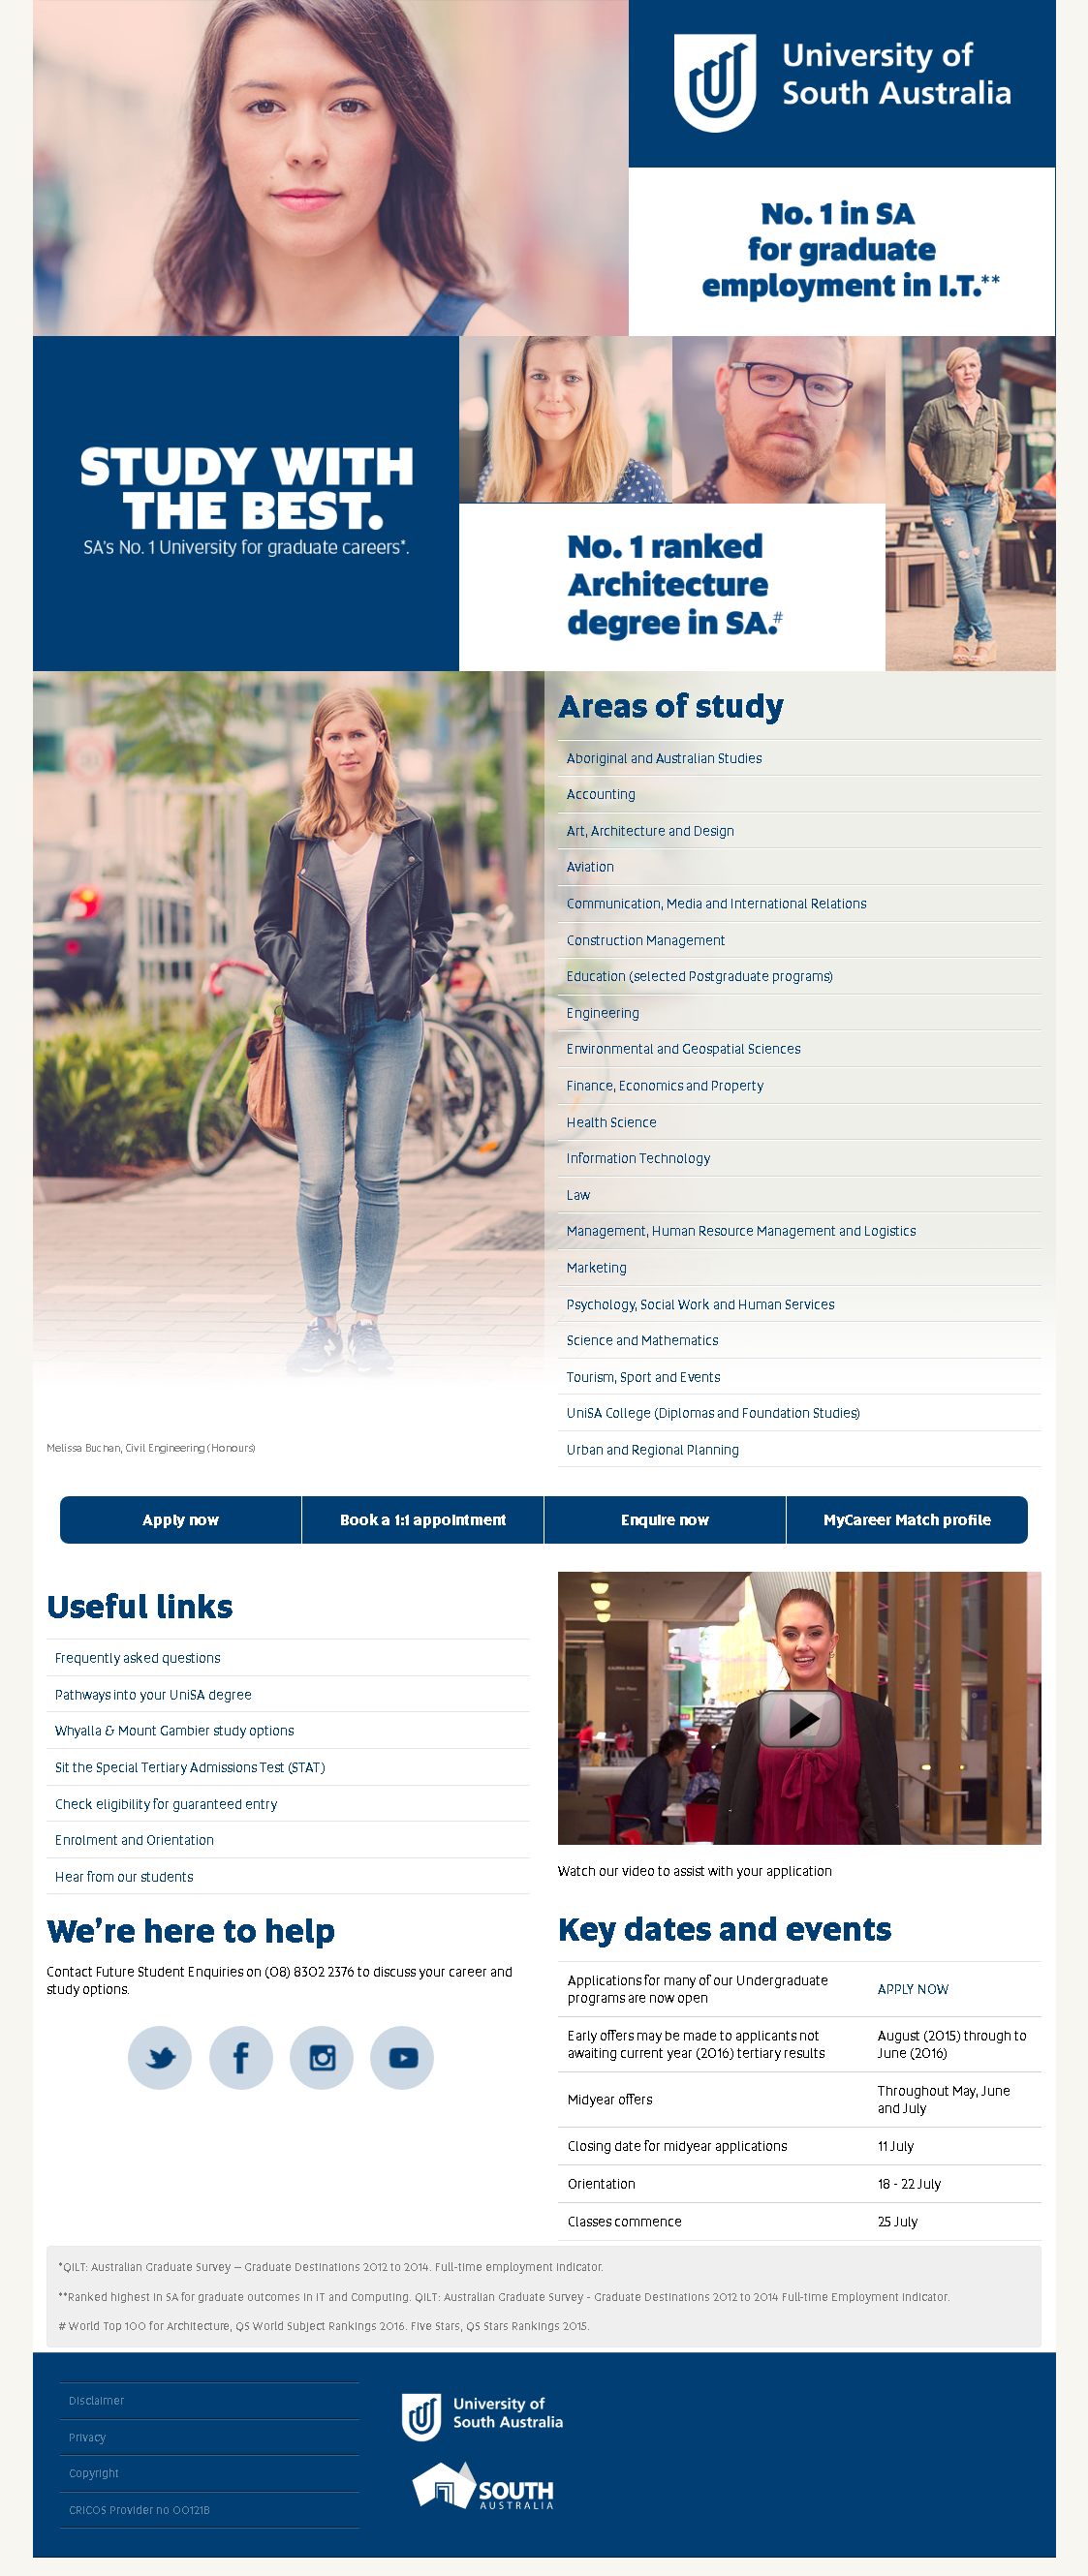 Design and development of a campaign website. Project undertaken whist working at University of South Australia.